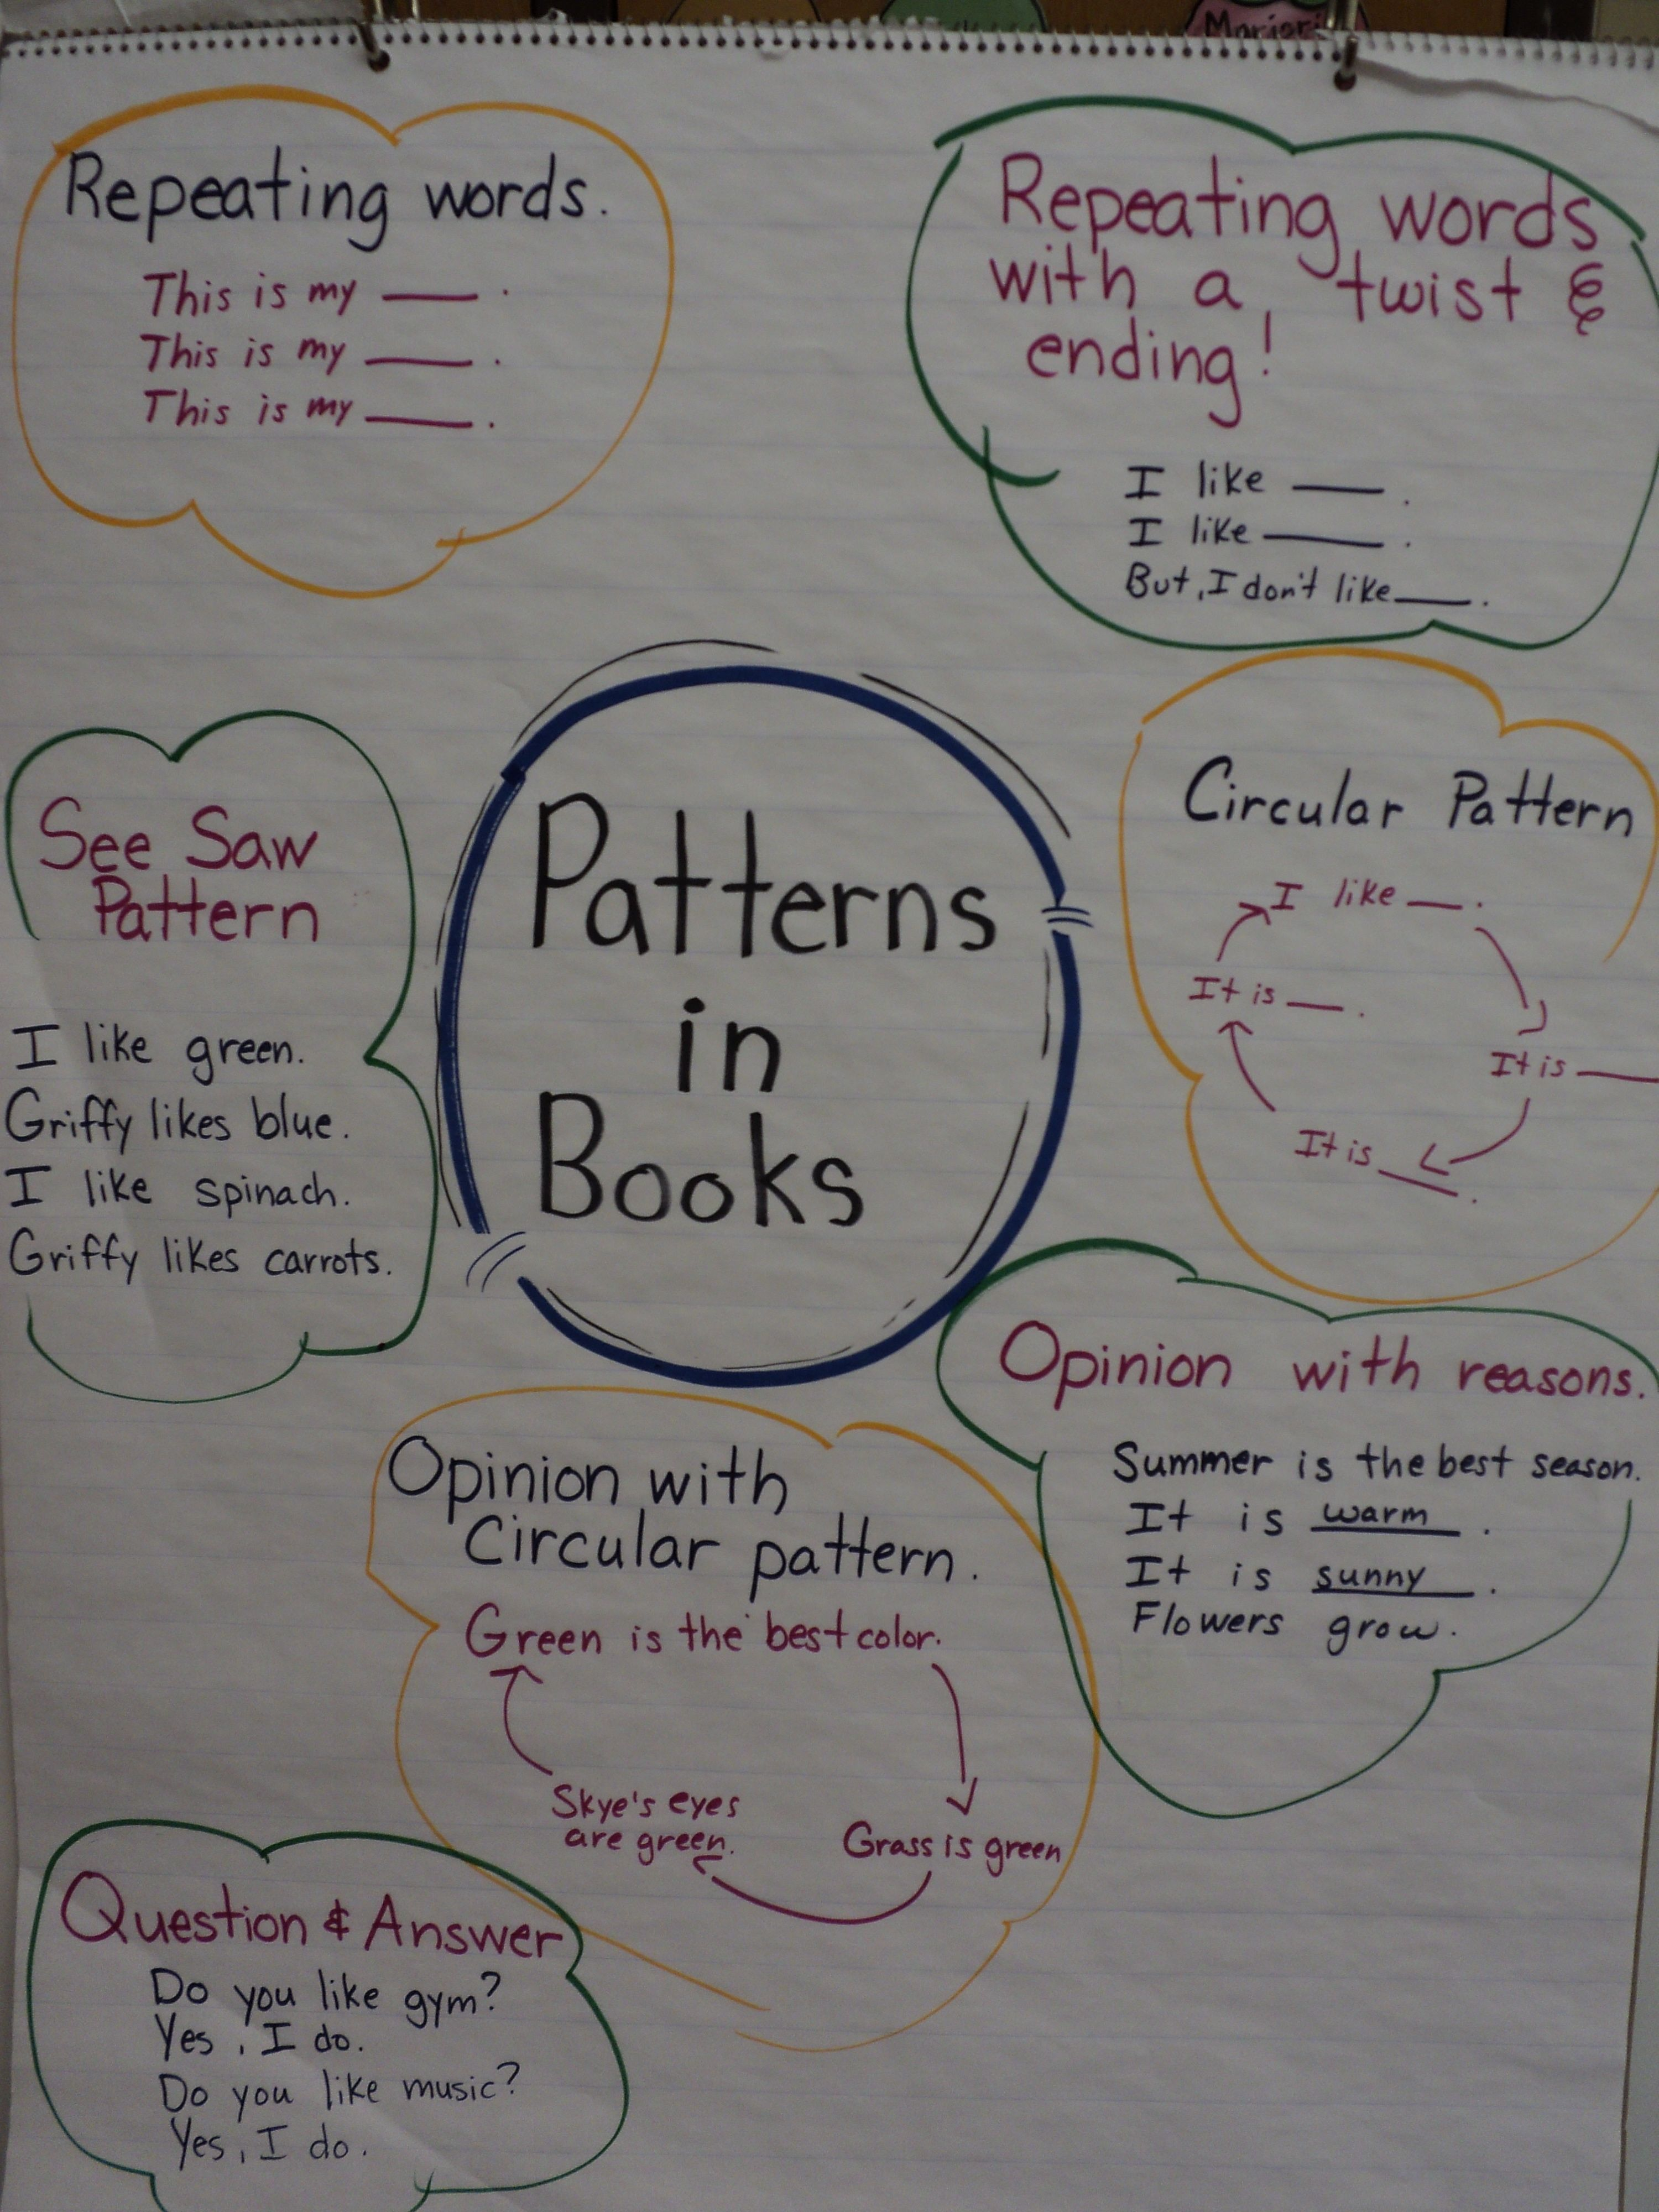 Patterns In Books Used In Reading And Writing Workshop